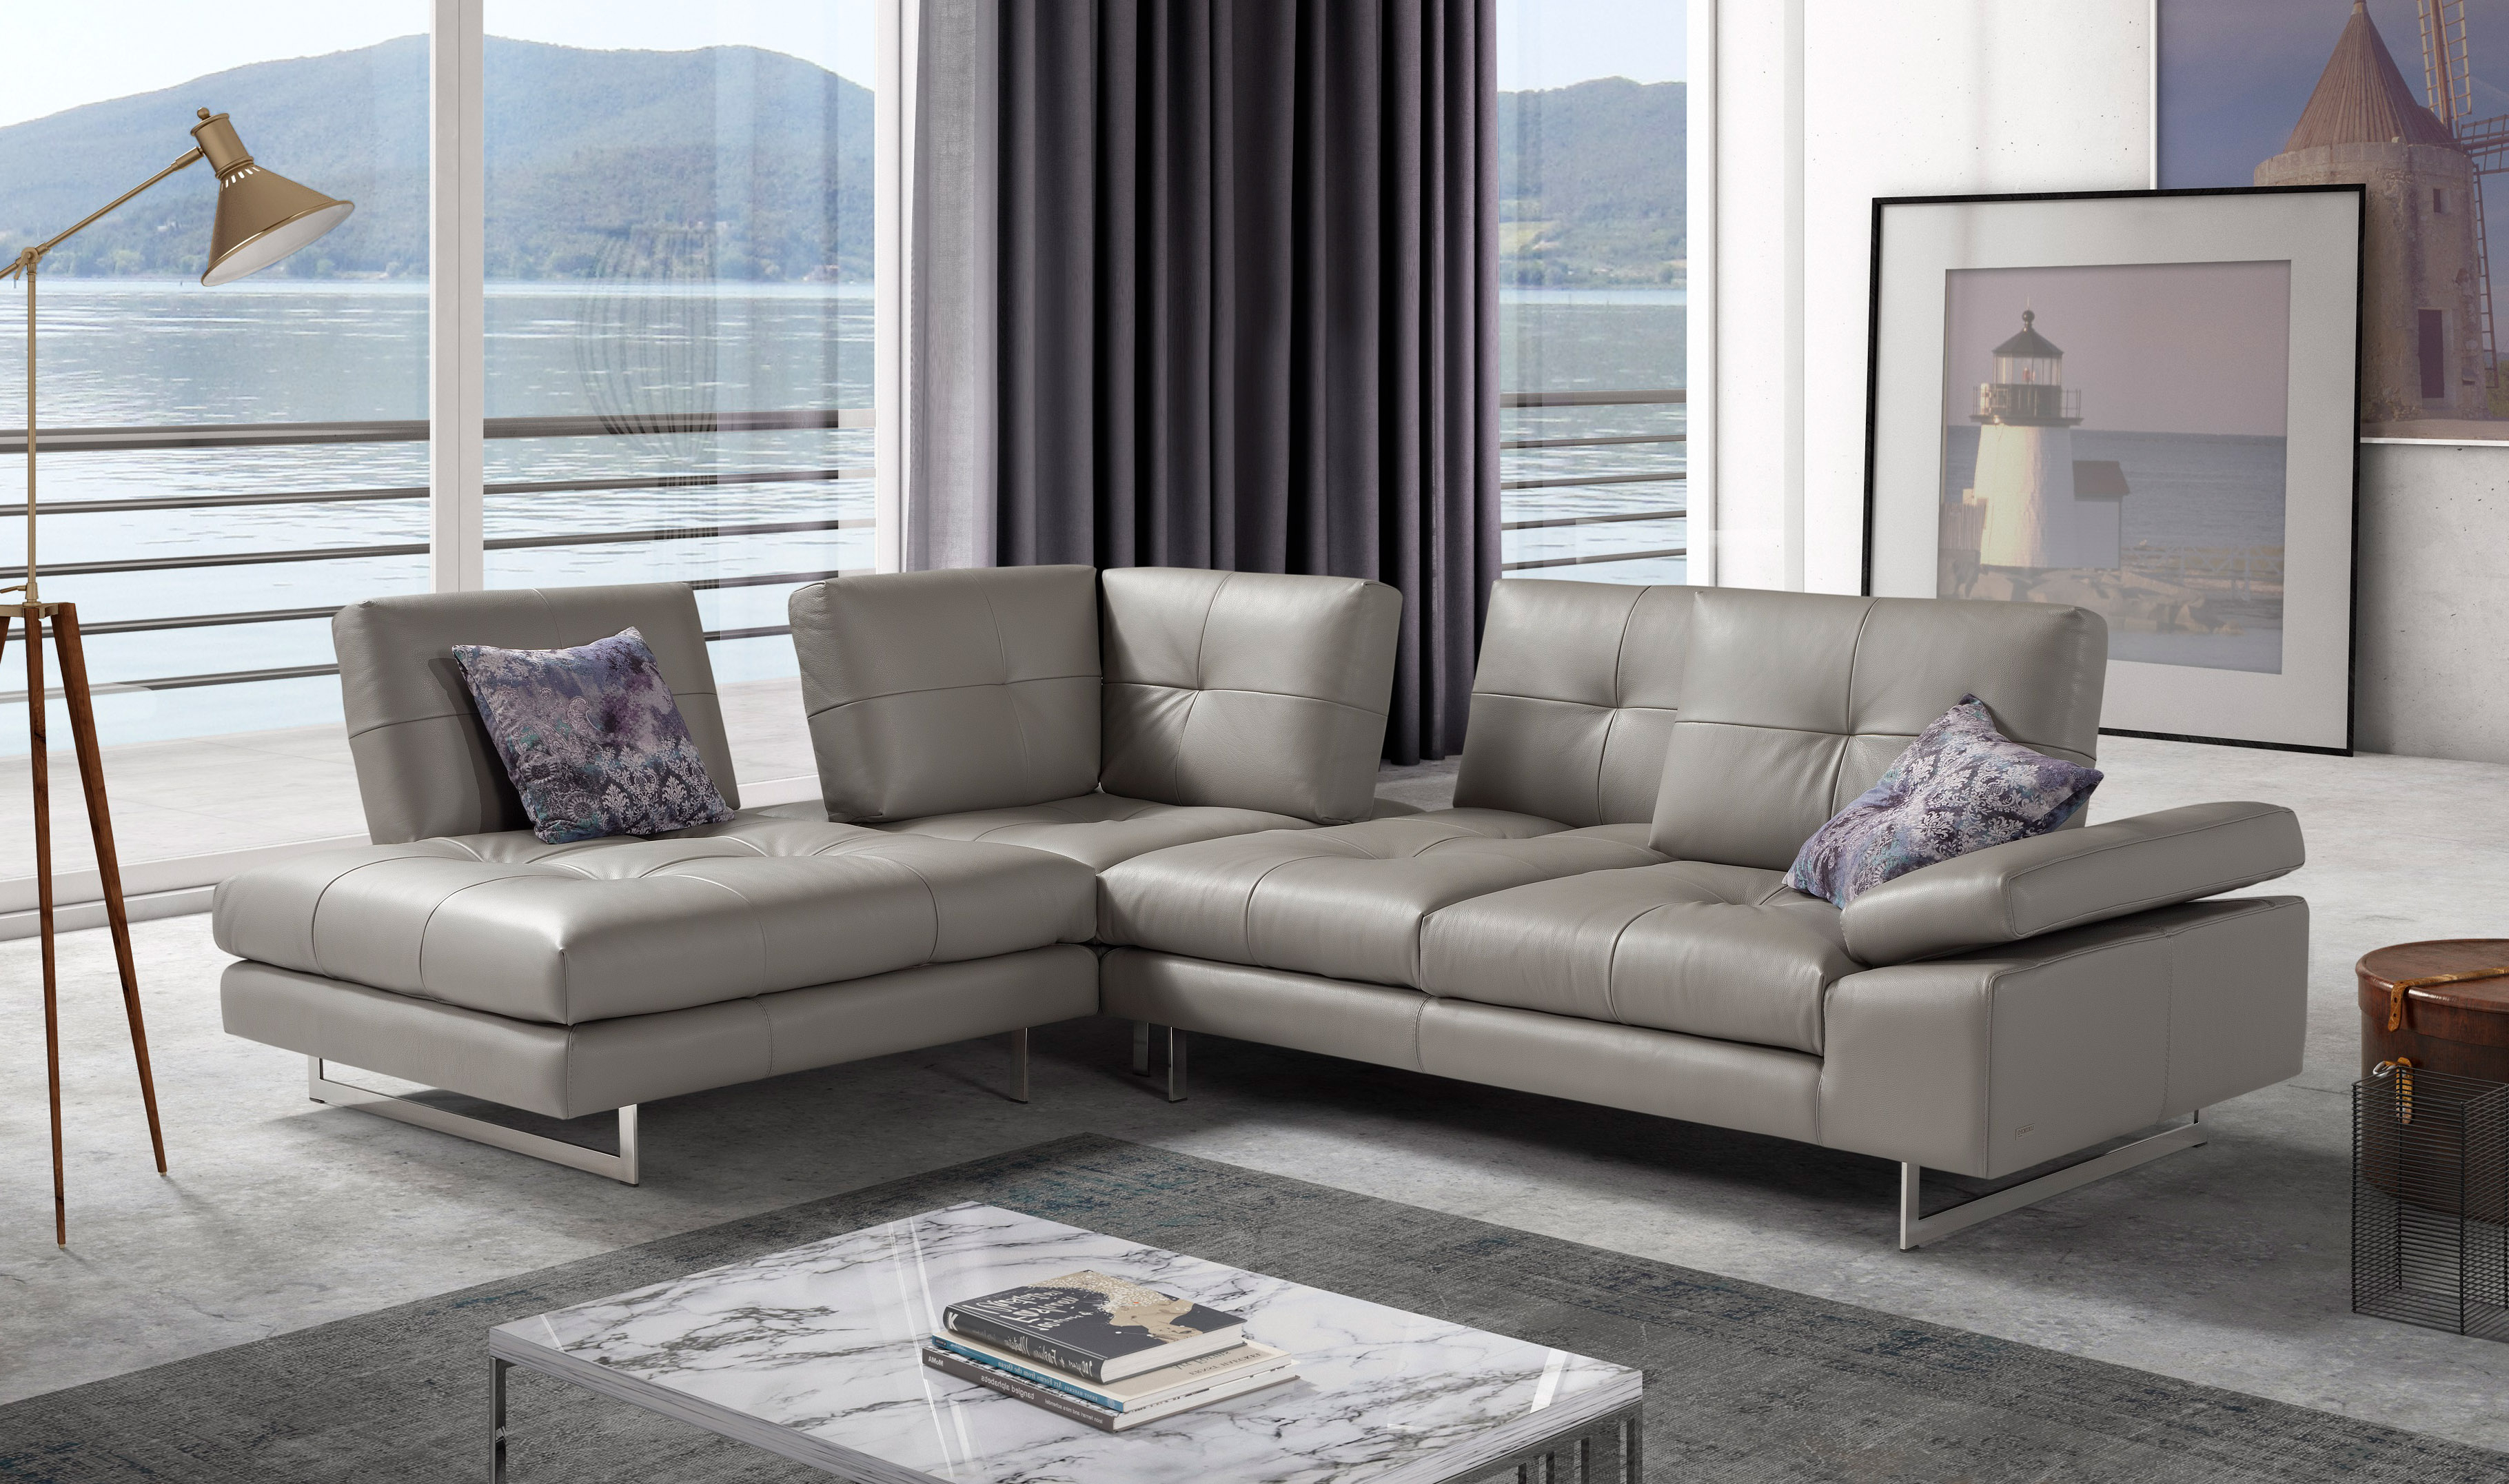 Advanced Adjustable Tufted Leather Sectional With Chaise Aurora Intended For Trendy Aurora 2 Piece Sectionals (Gallery 7 of 20)